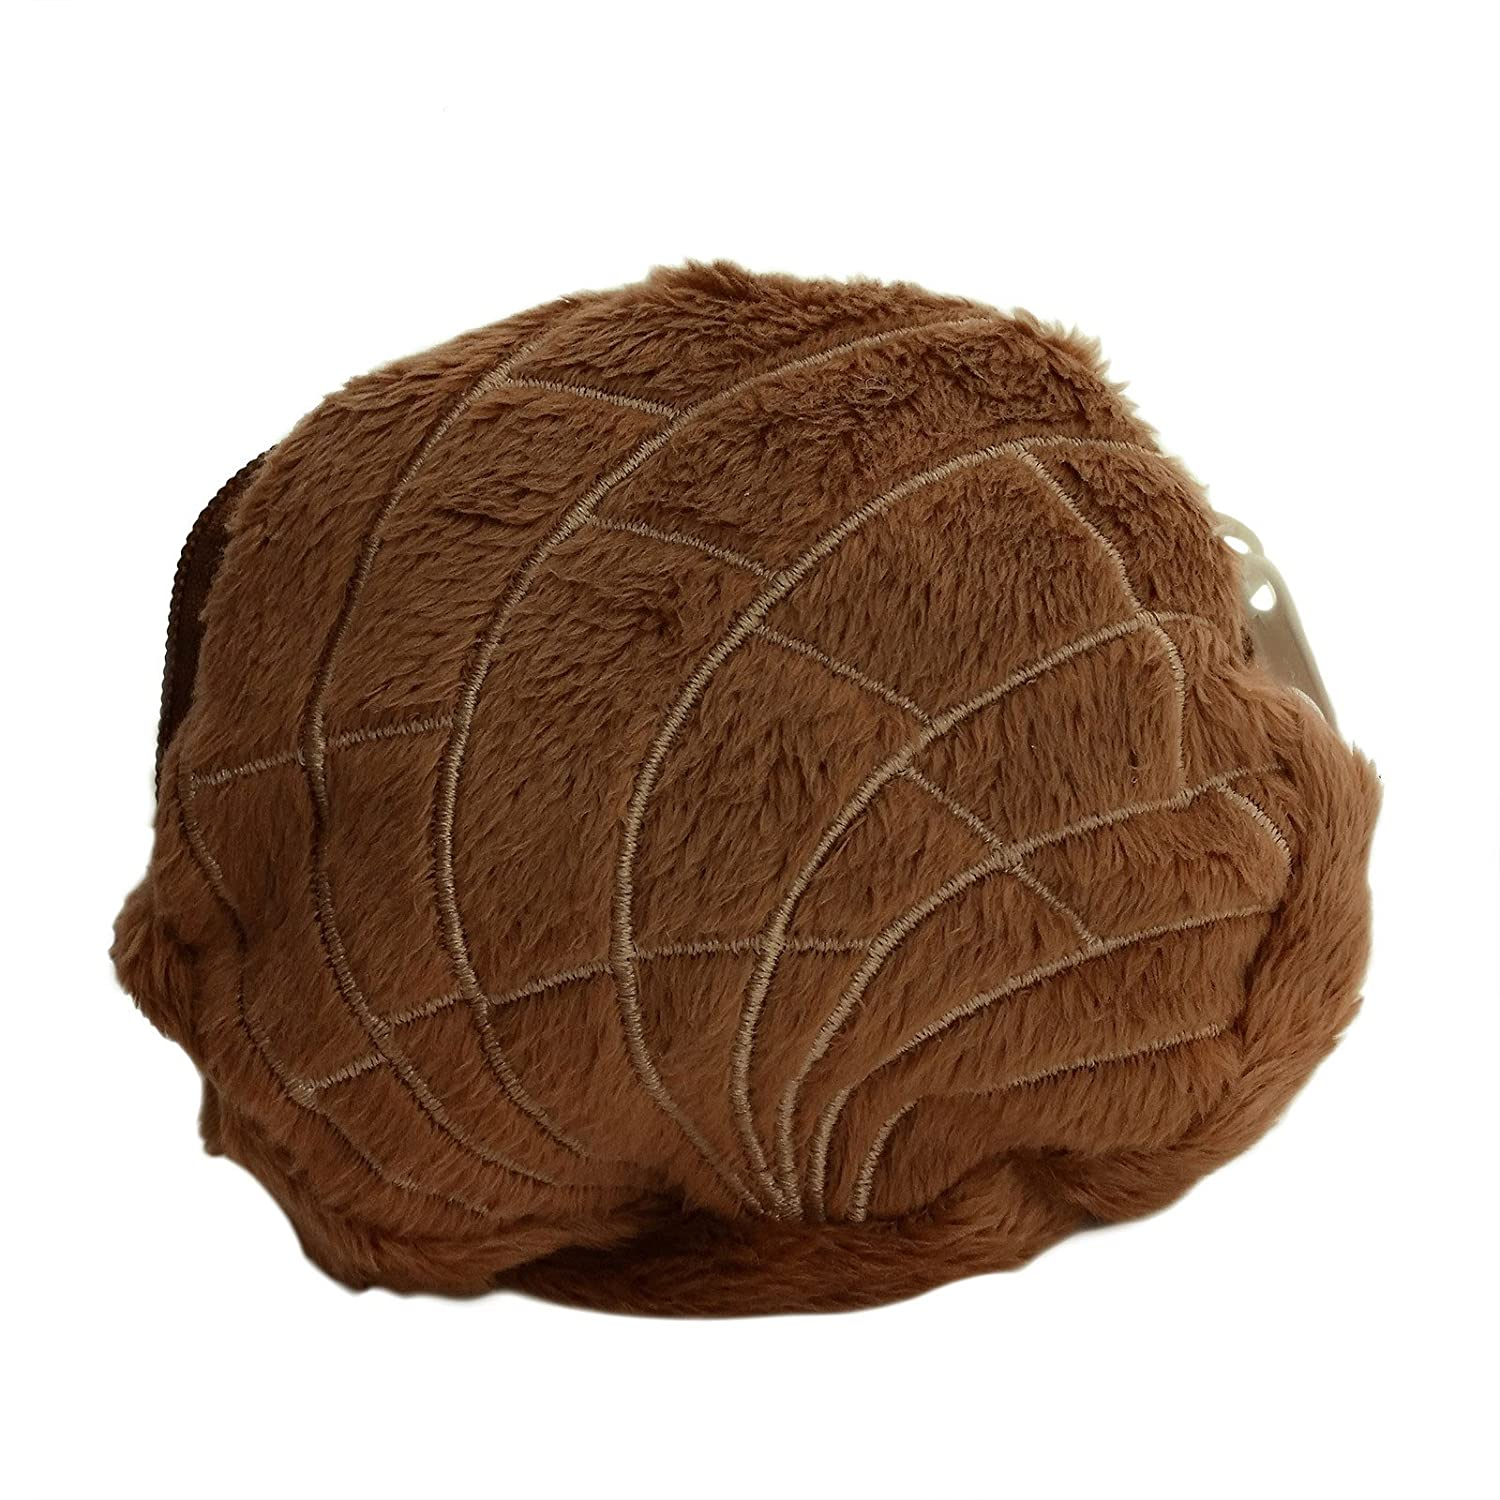 Amazon.com : Adorox Pan Dulce Concha Plush Coin Purse Mexican Pastry Cute Novelty Money Pouch (Chocolate Brown (Coin Purse)) : Beauty